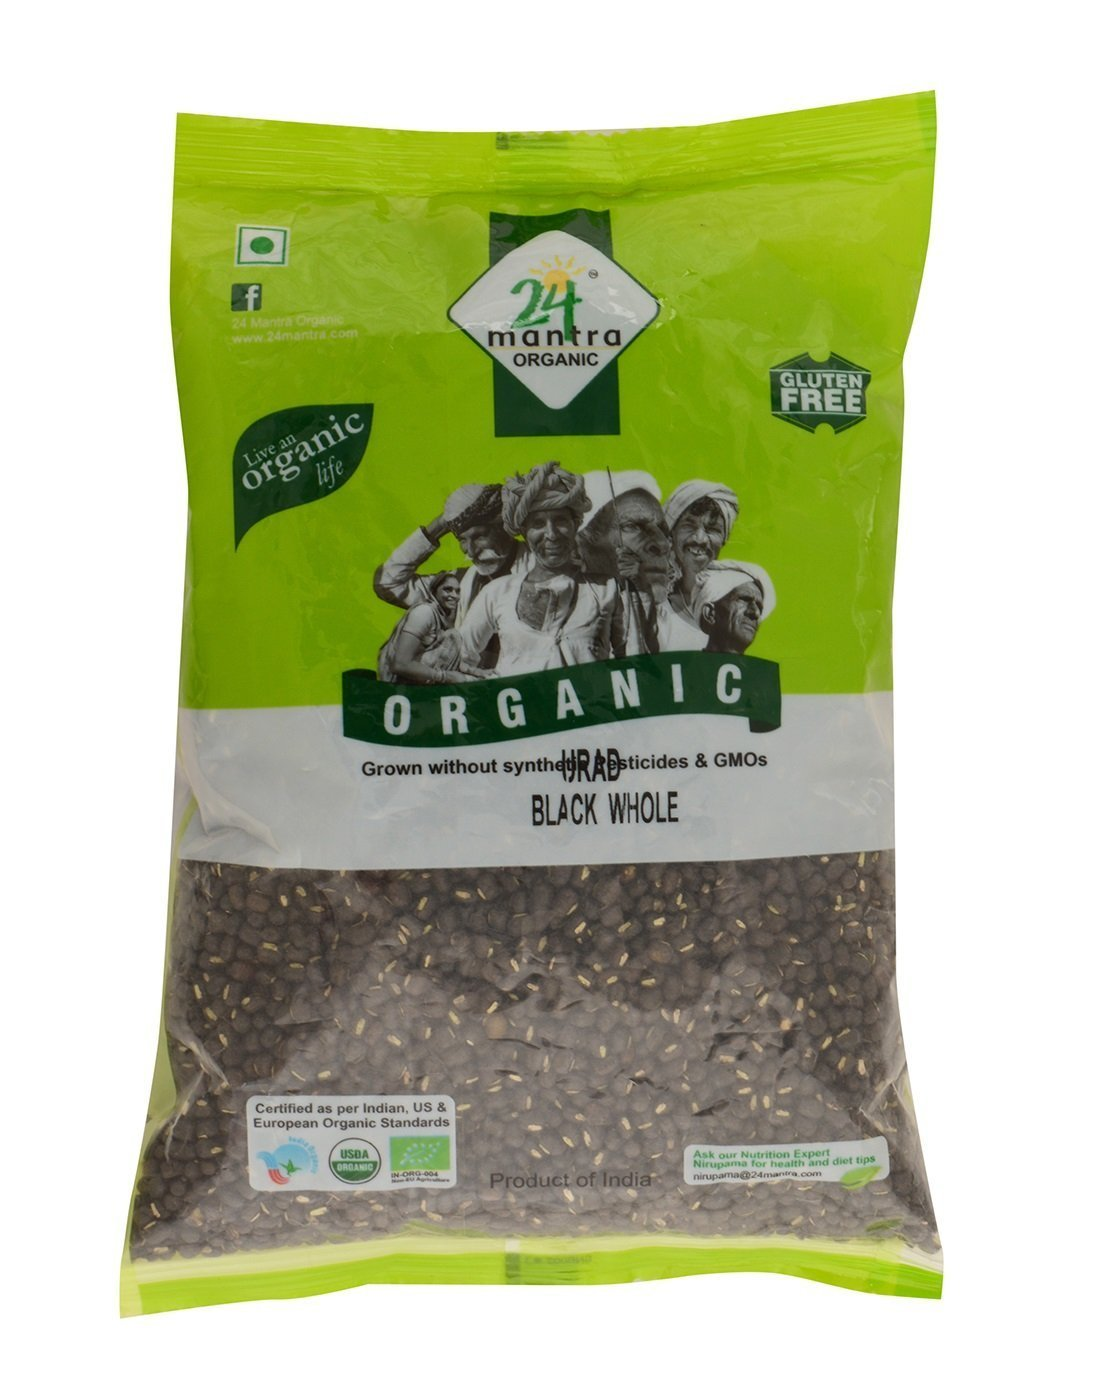 Organic Urad Dal Black Whole 2 Pounds, Black Matpe Beans or Black lentils, USDA Certified Organic - 24 Mantra Organic